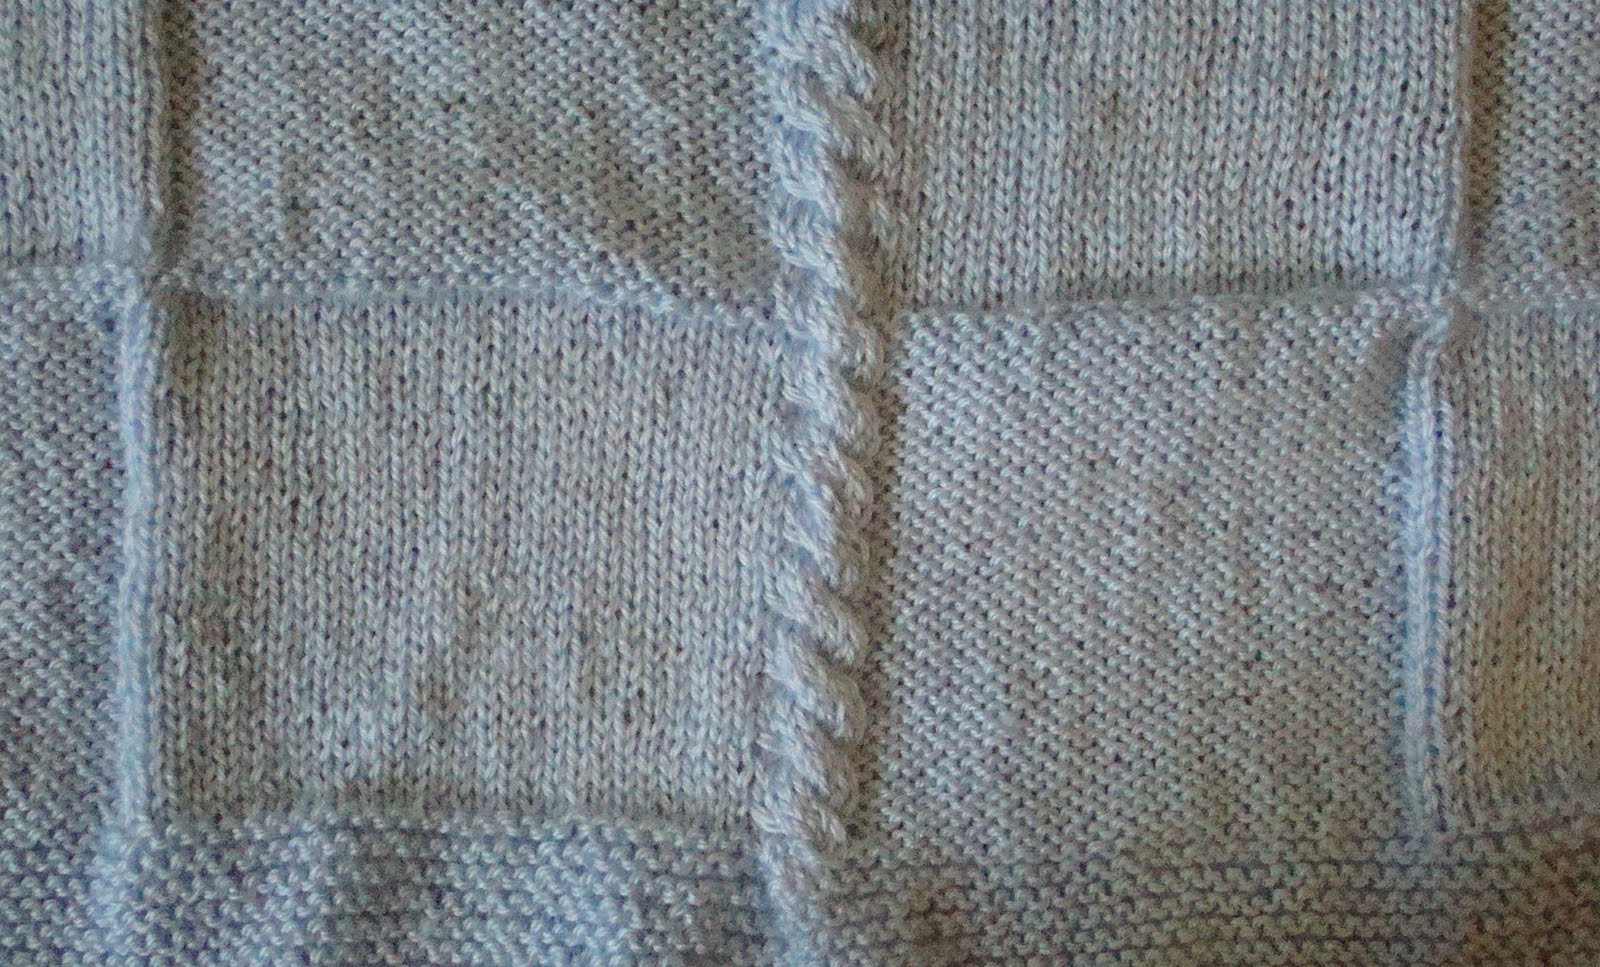 Knitting Patterns Squares : Crafts By Starlight: Knit Baby Blanket - Squares and Cords